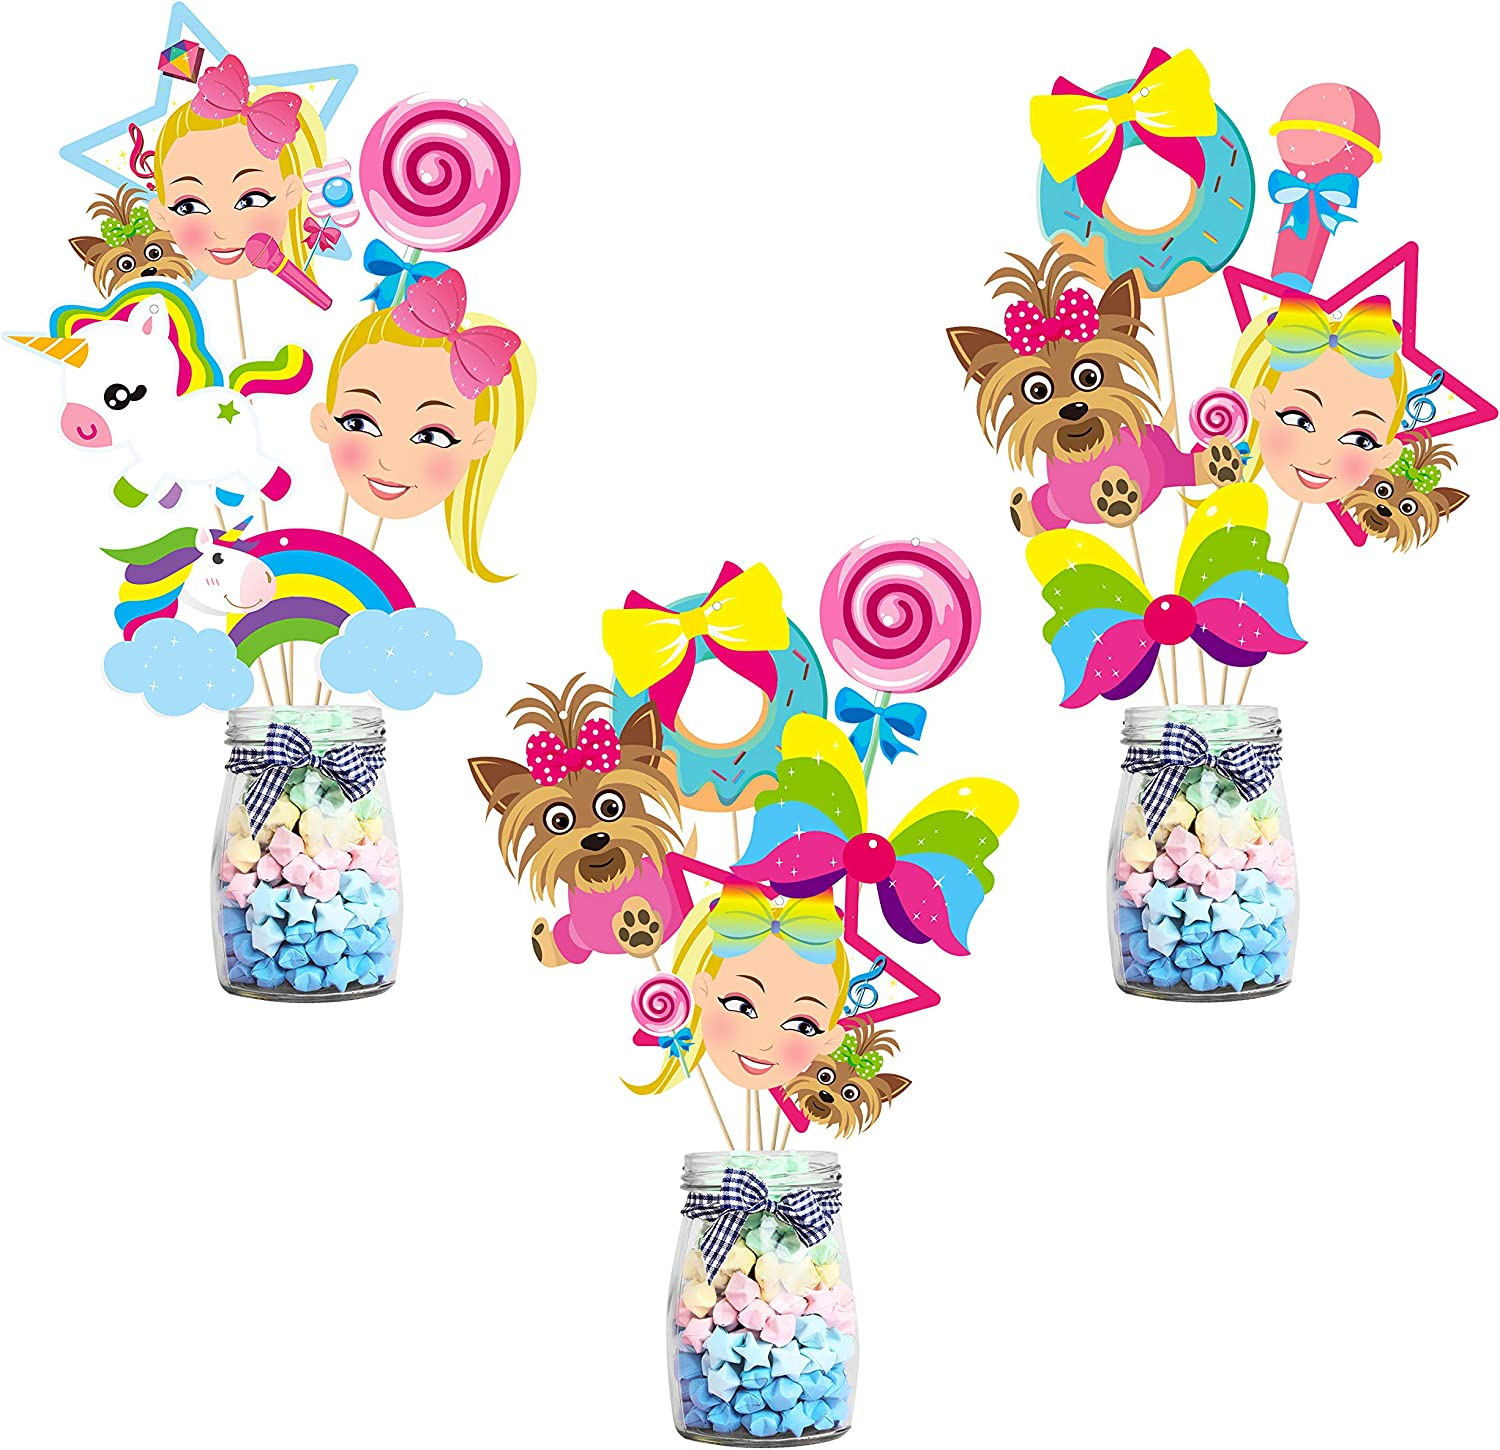 PANTIDE JoJo Party Decorations – 30 Pcs JoJo Centerpiece Sticks Table Toppers, Double Sided Cupcake Toppers Photo Booth Props - JoJo Themed Party Supplies Party Favors for Kids Birthday Baby Shower